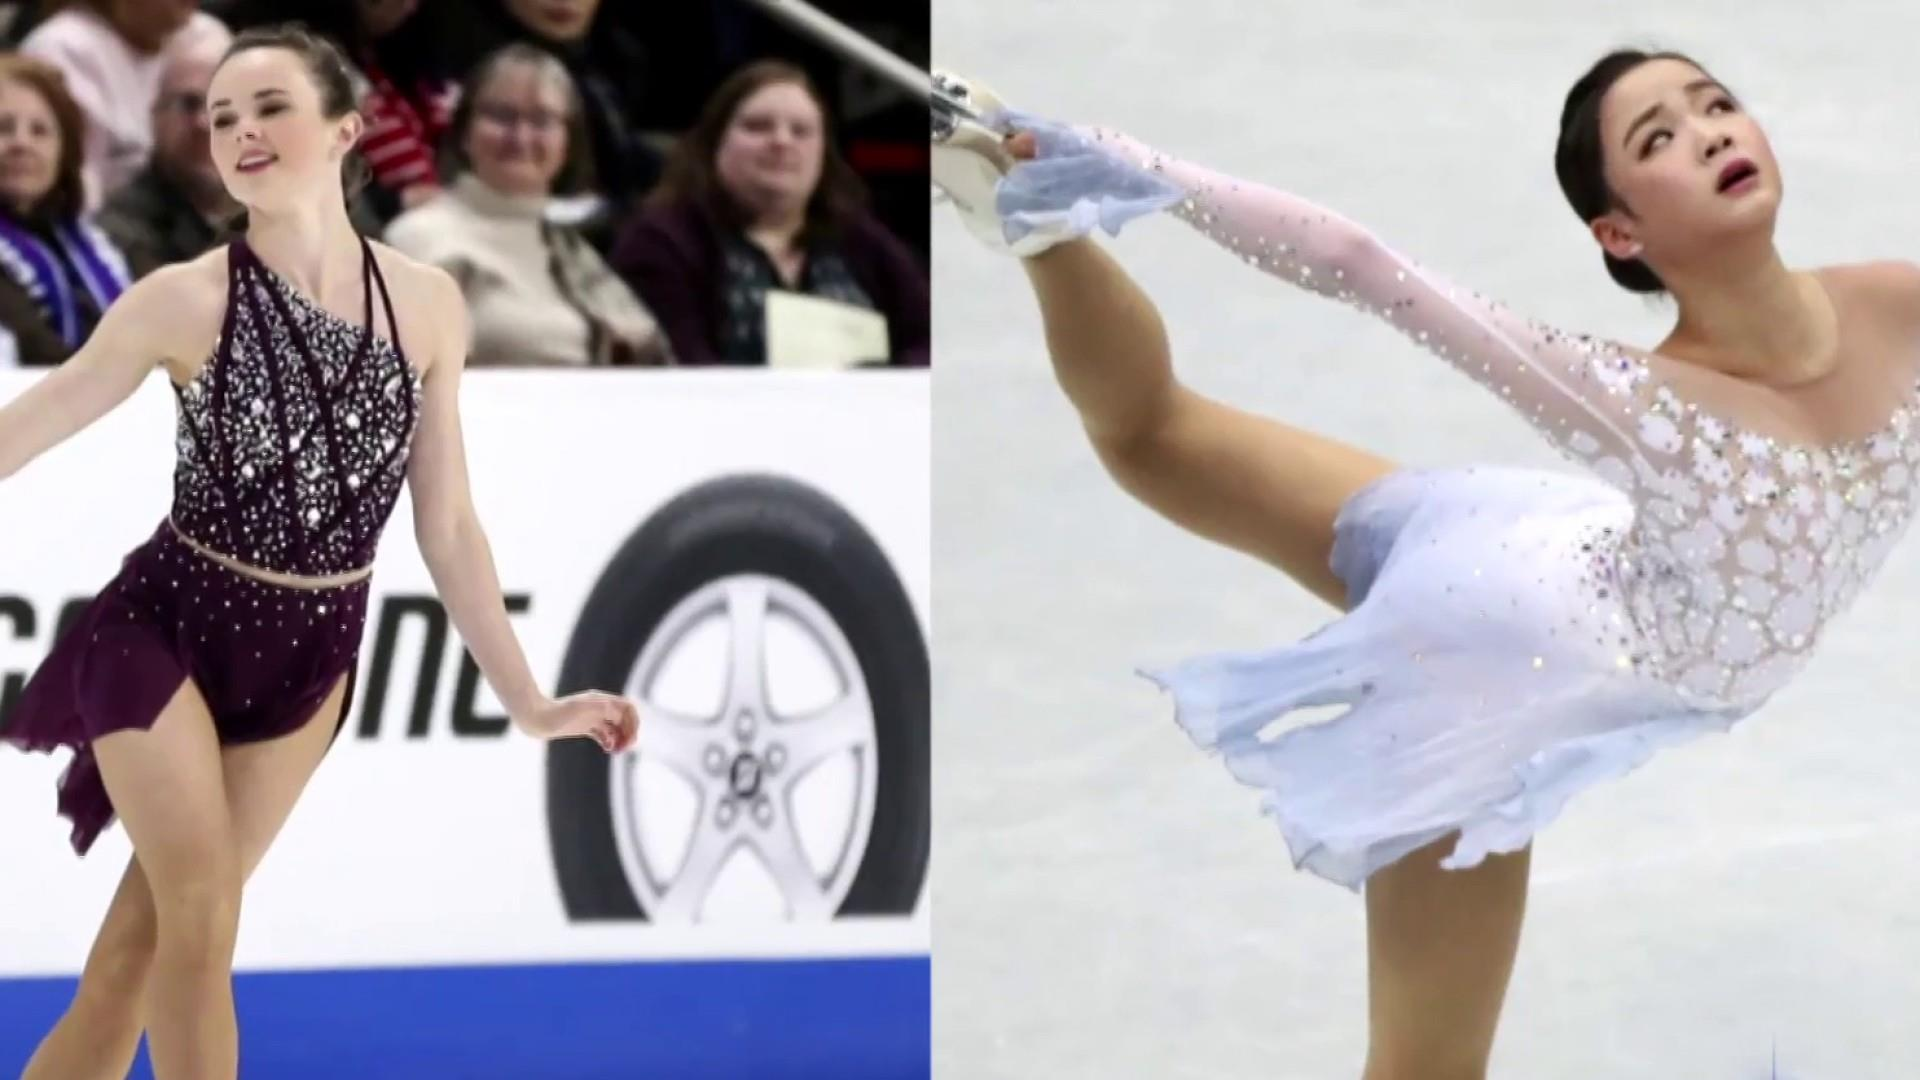 U.S. figure skater accused of injuring rival with skate blade